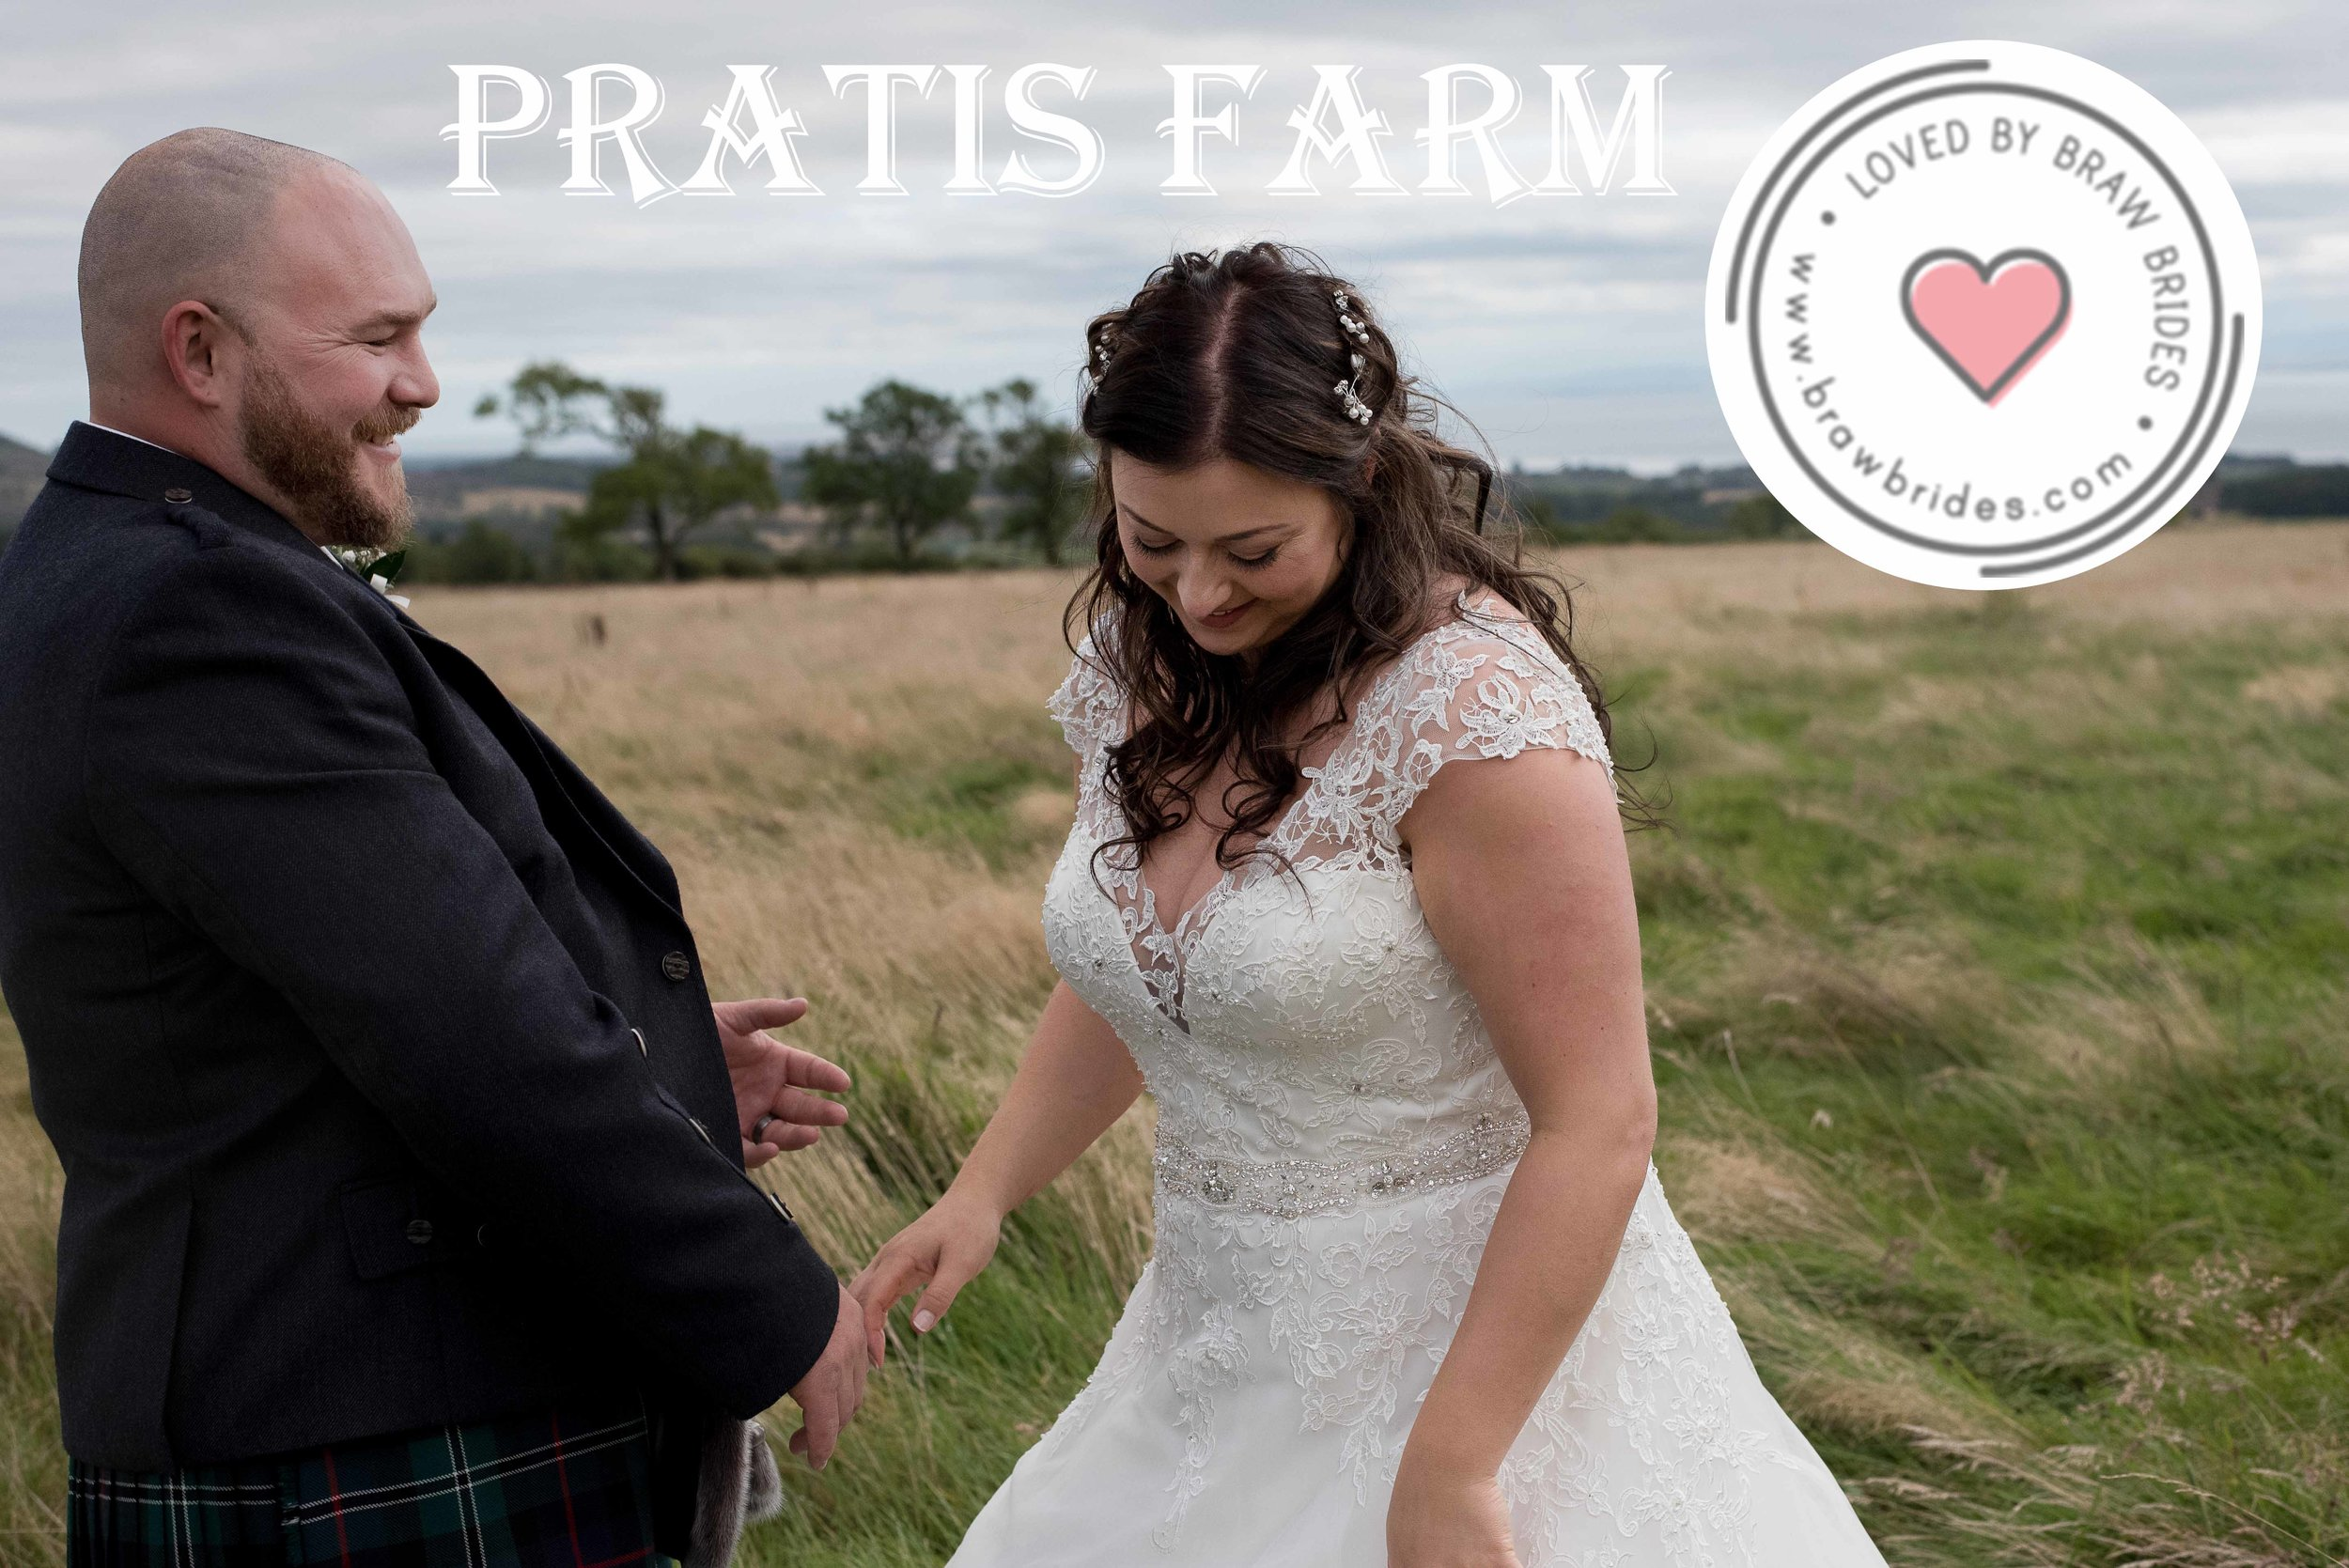 Pratis Farm Wedding - Braw Brides